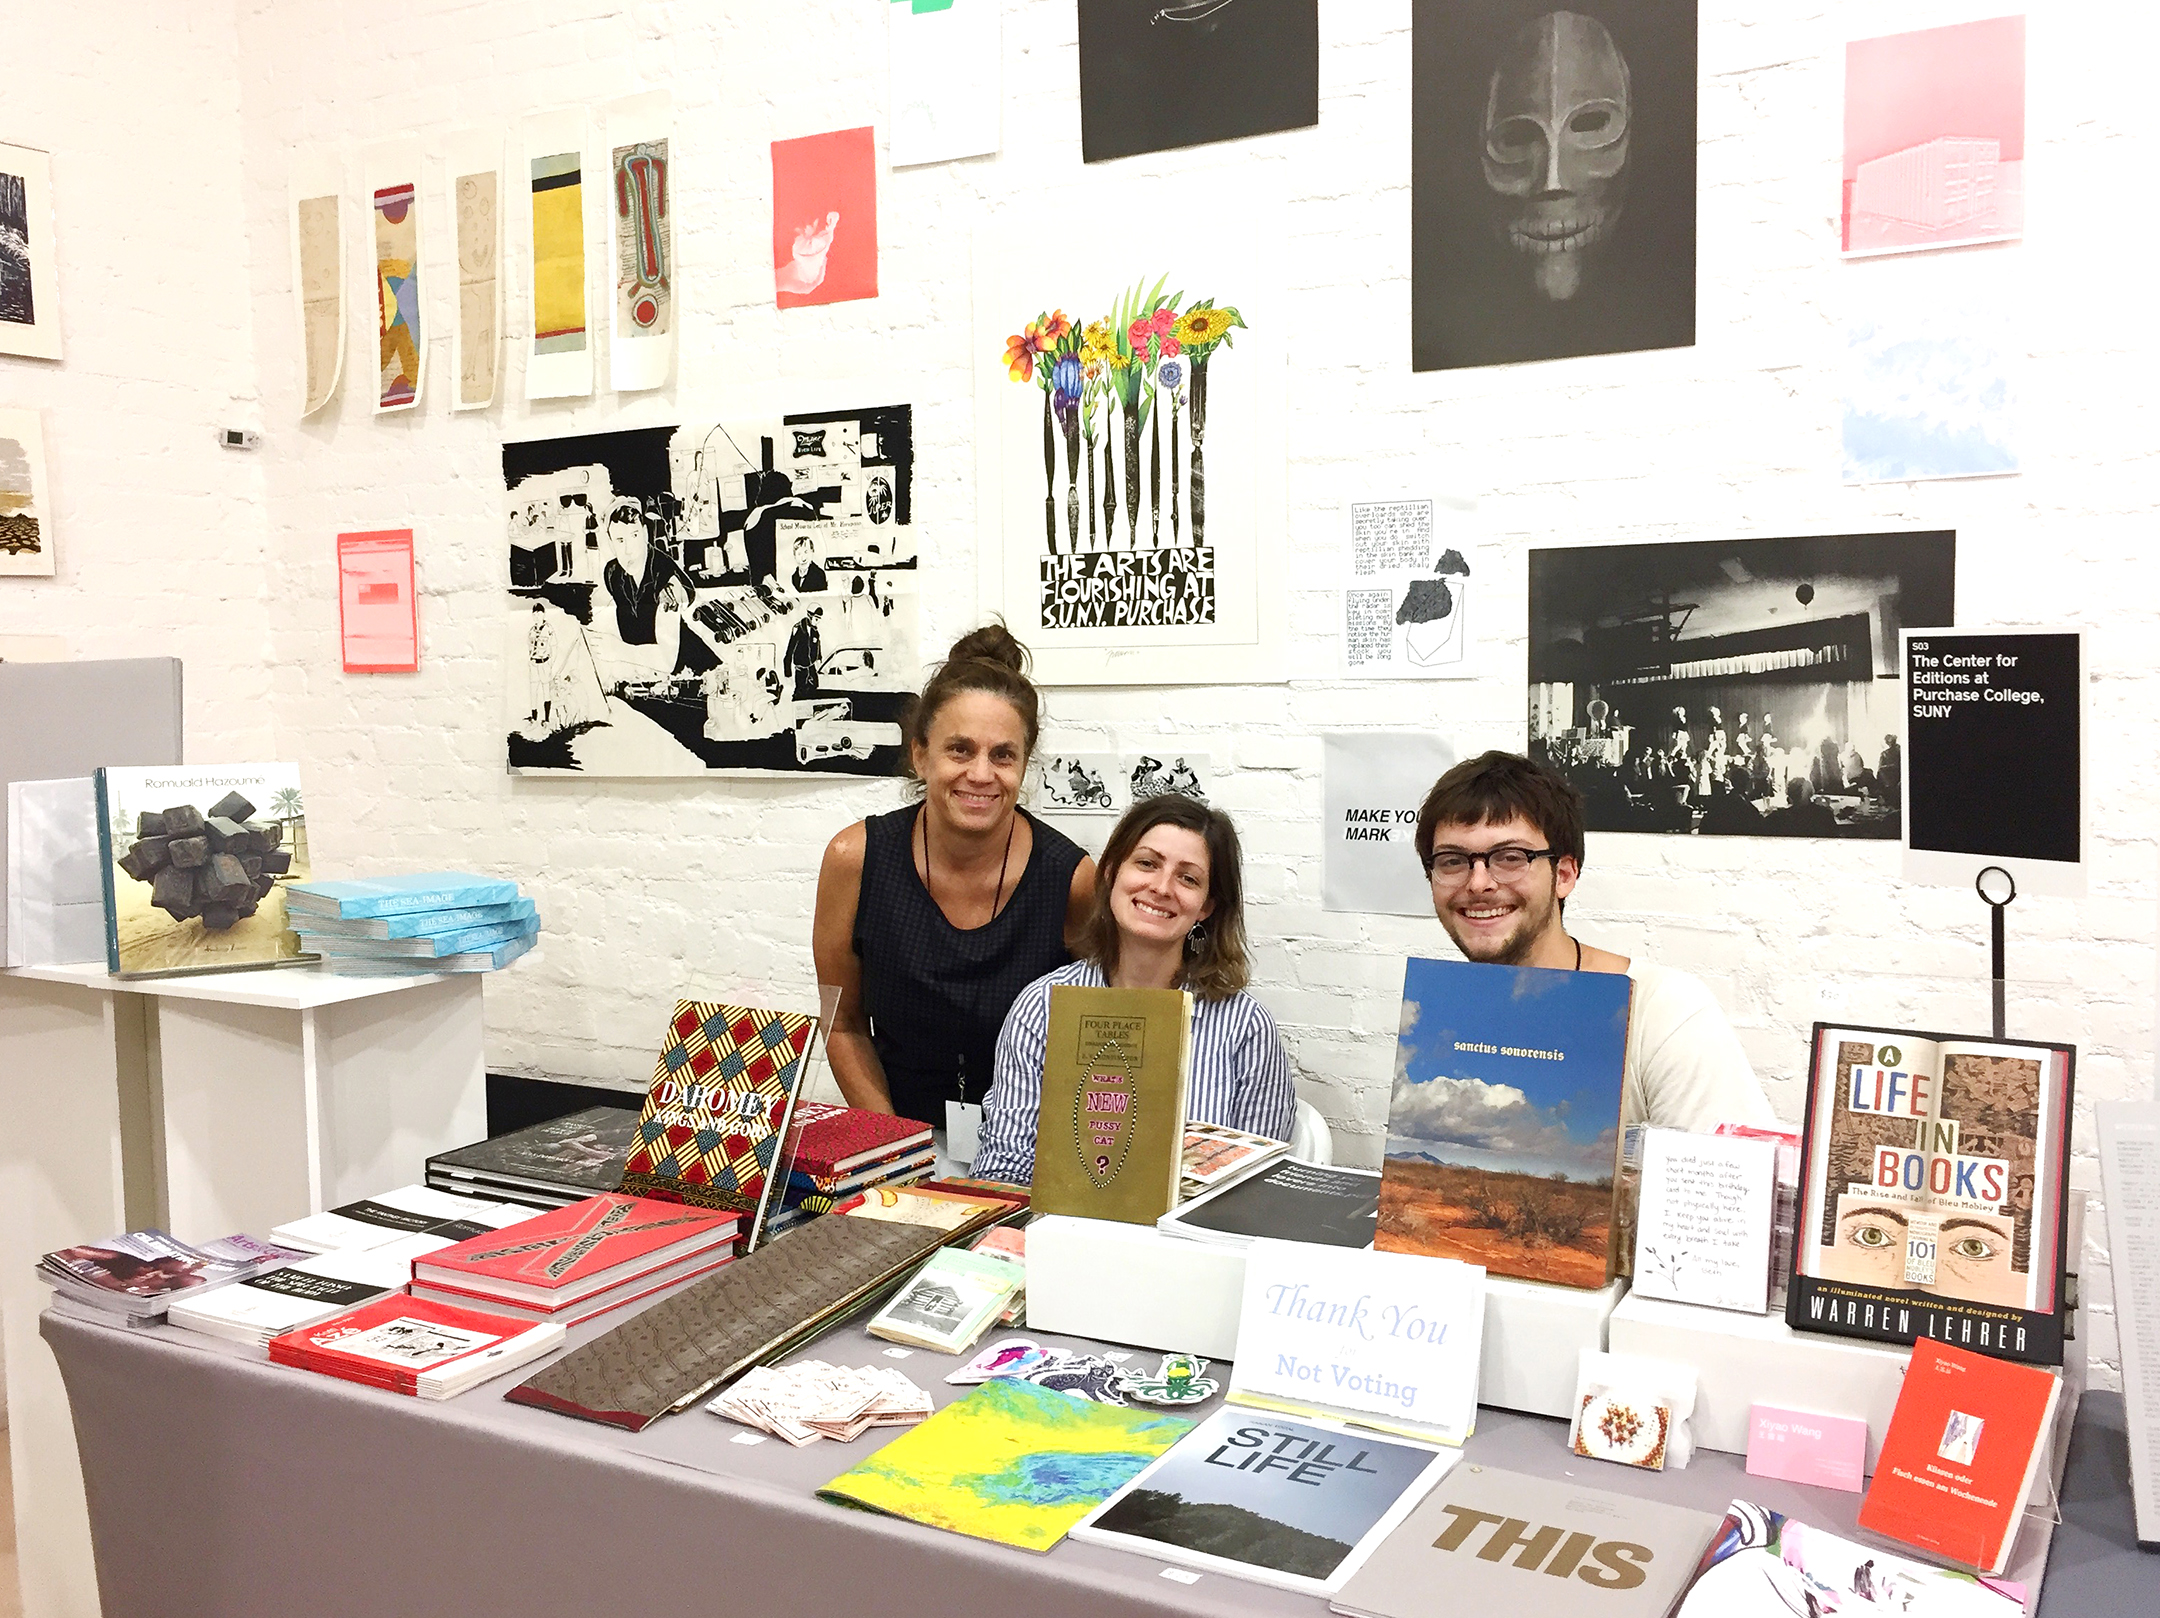 The Center for Editions at the School of Art+Design, Purchase College, SUNY, participates in the New Art Book Fair at PS1 ...